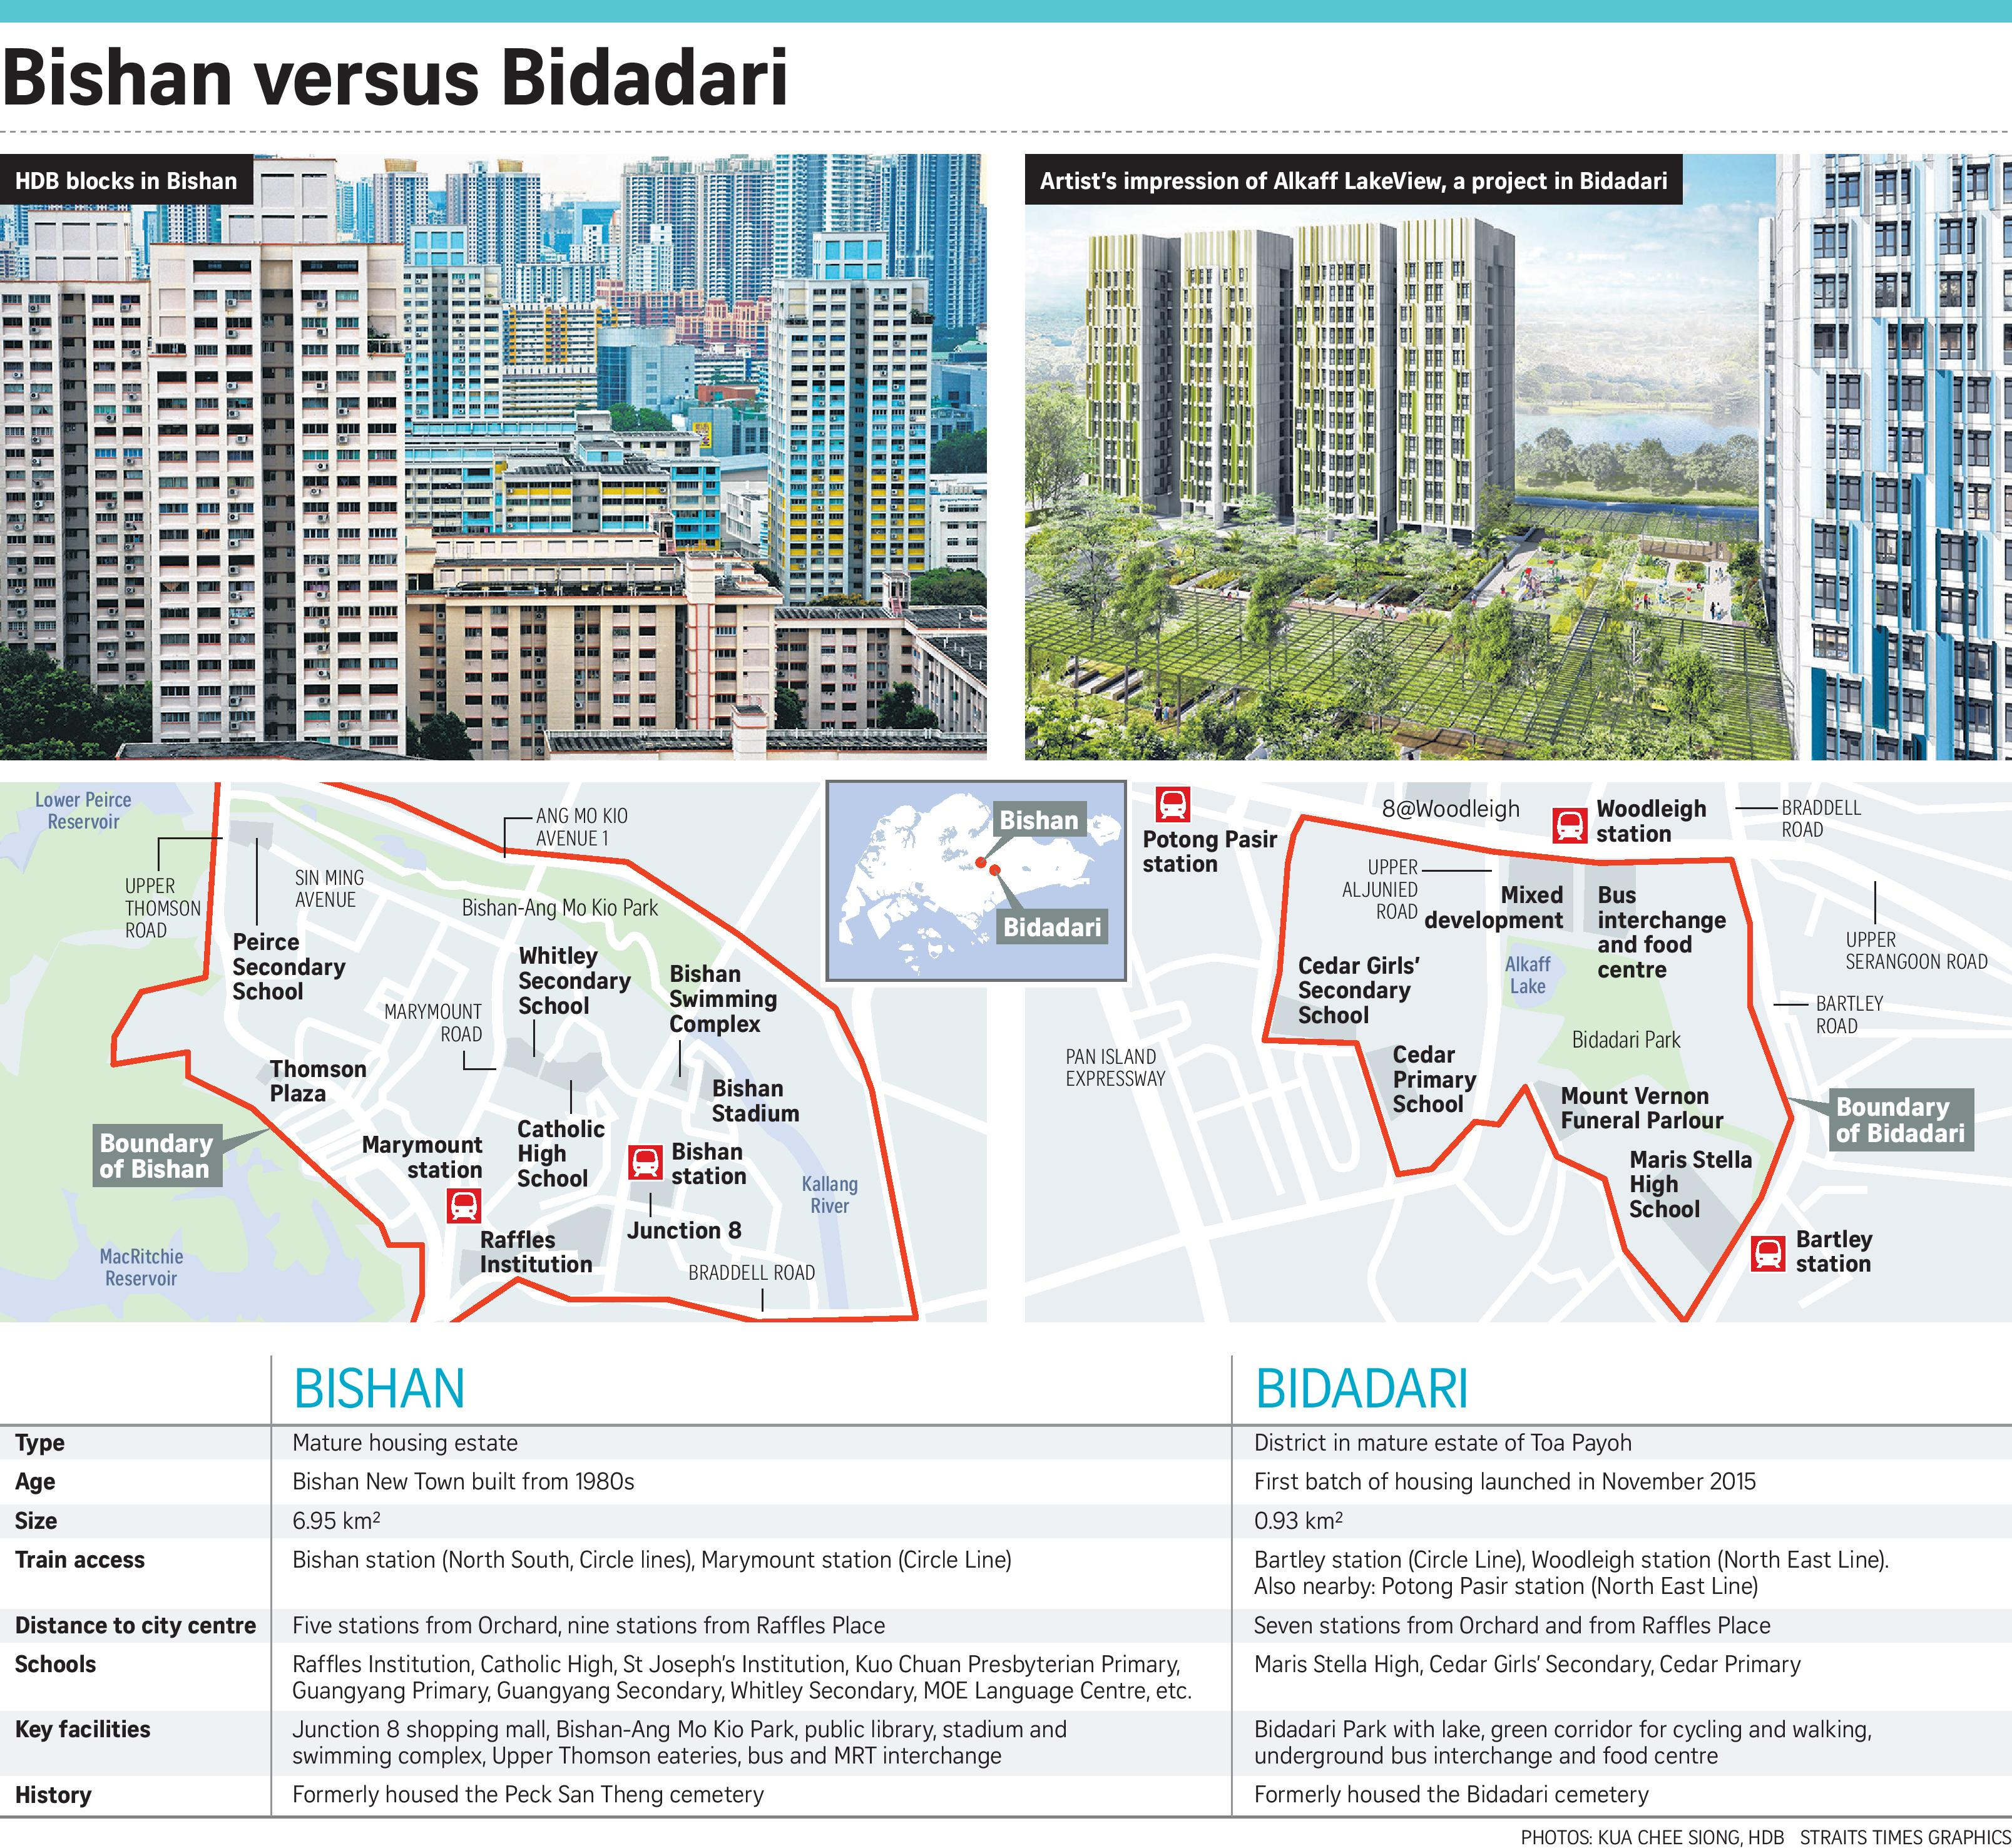 Singapore Property Launches - Bidadari New Estate Condo